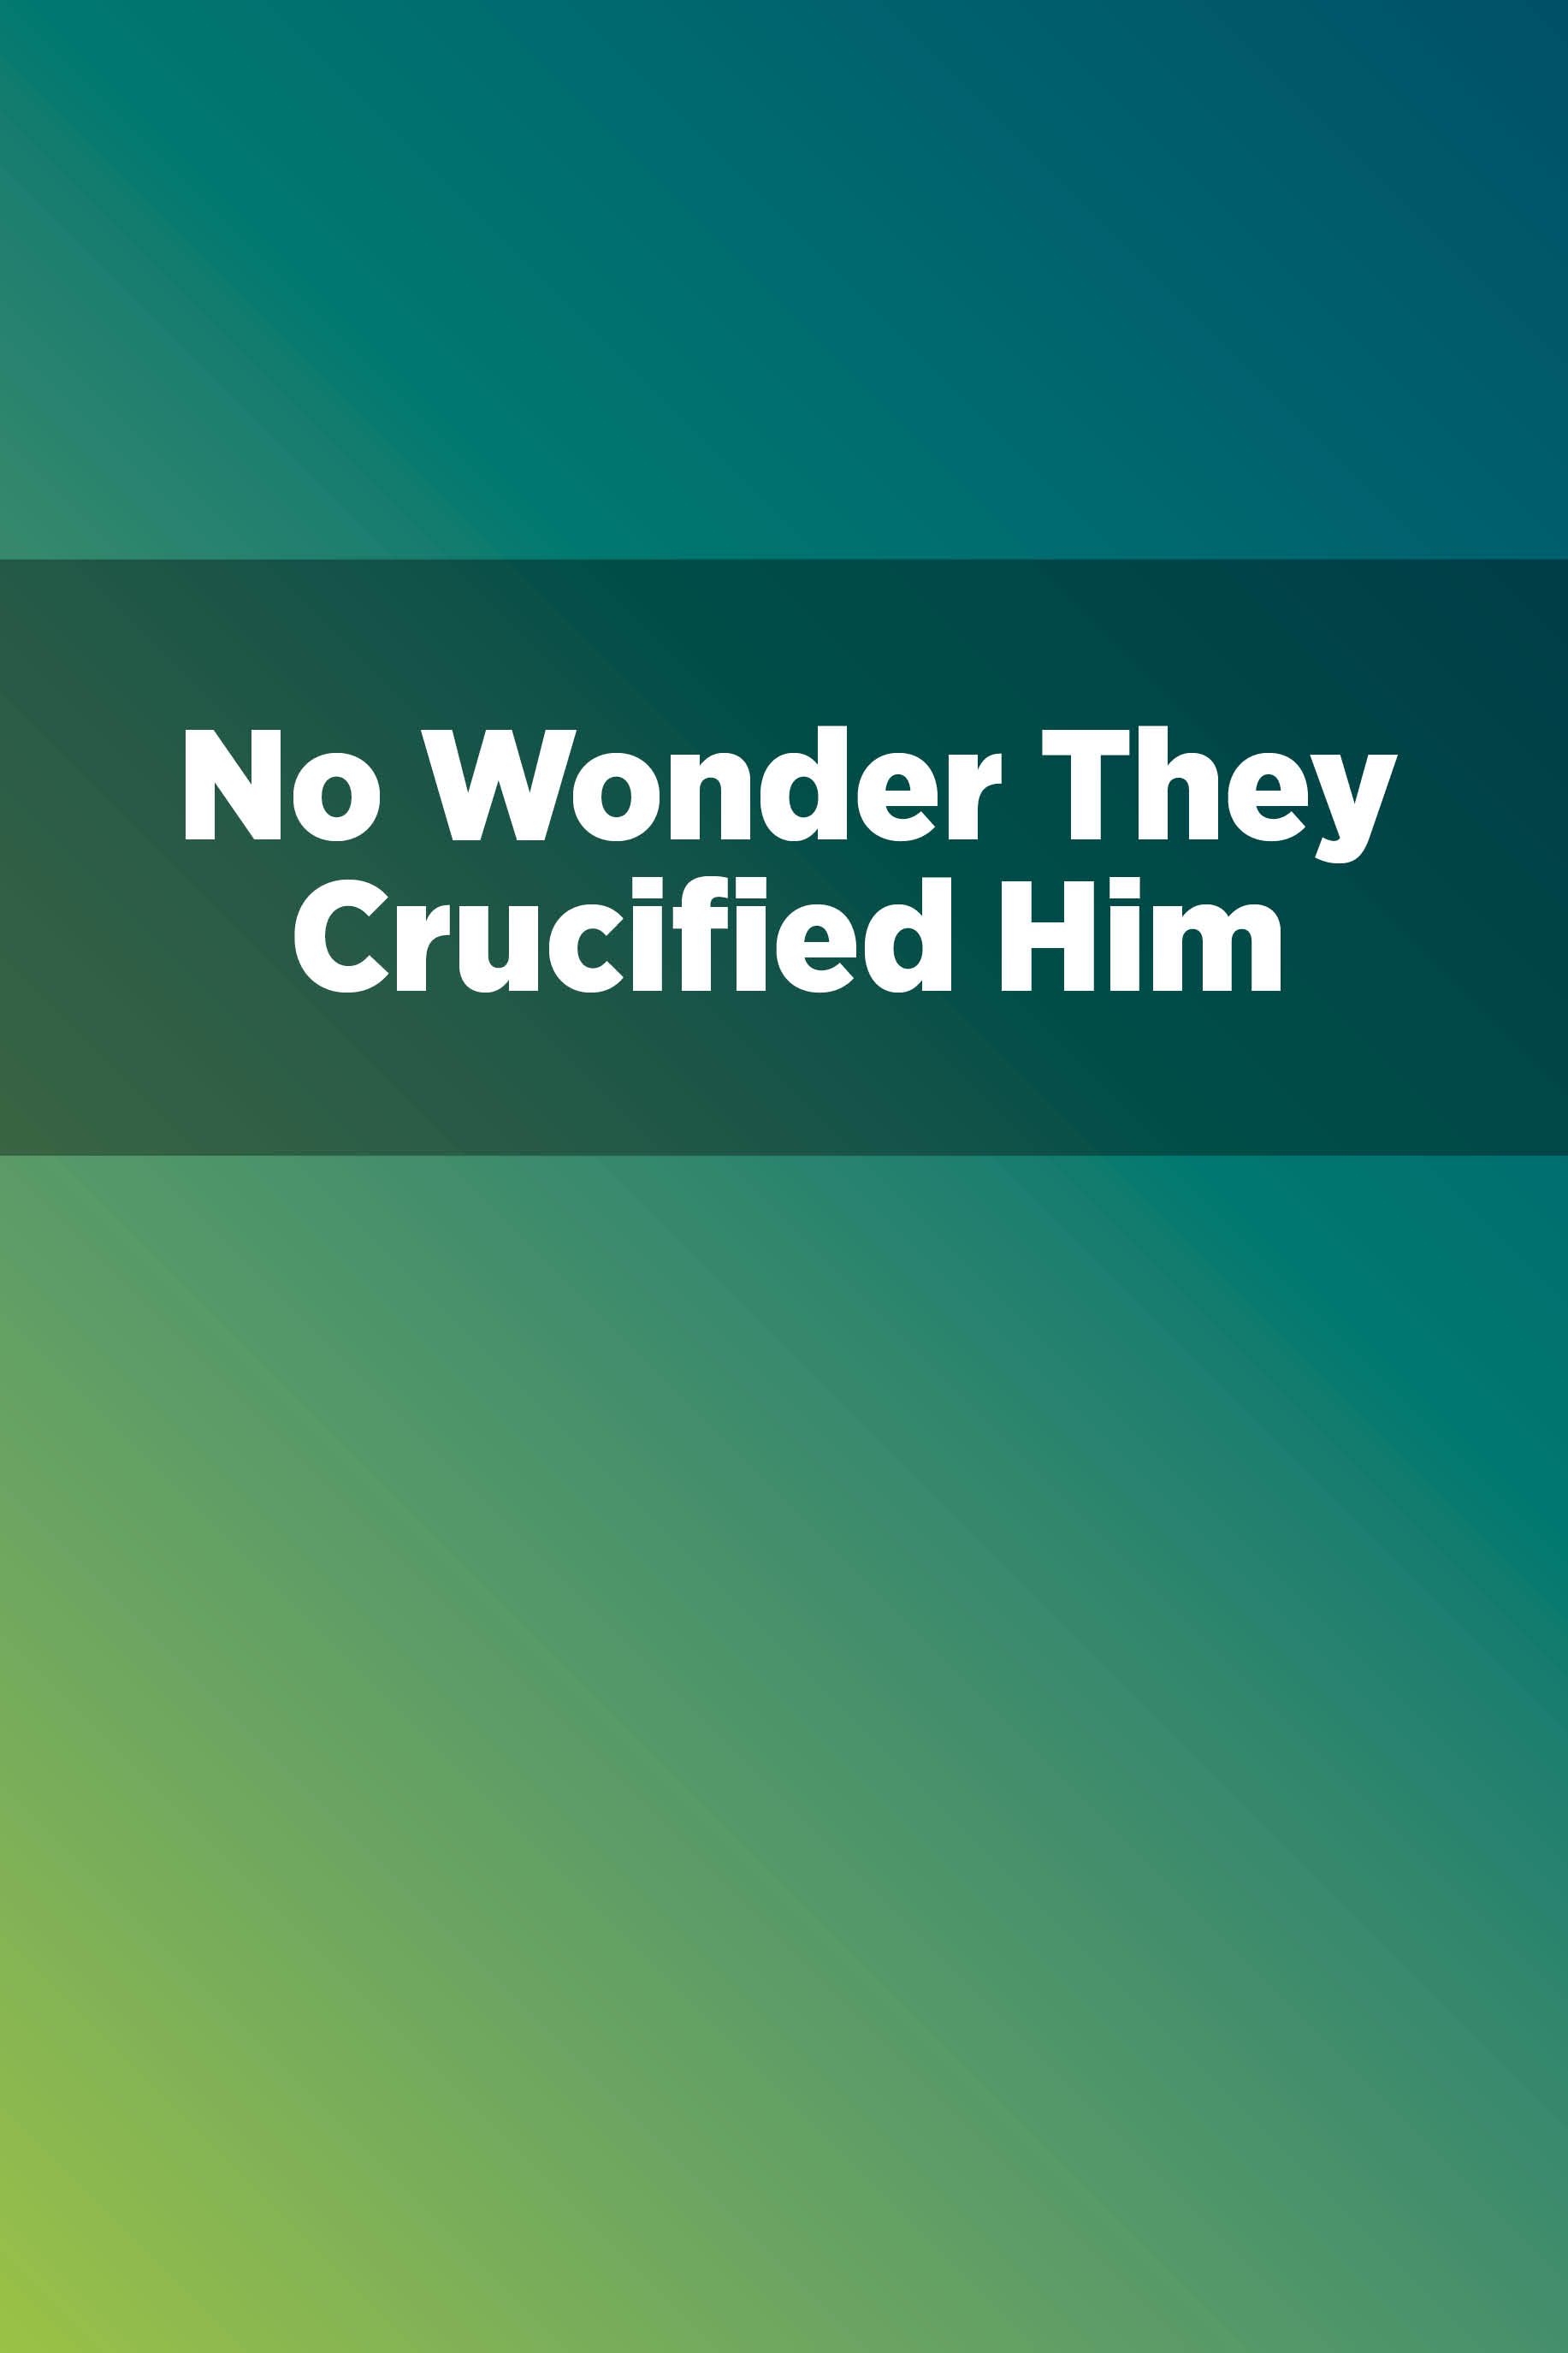 No Wonder They Crucified Him